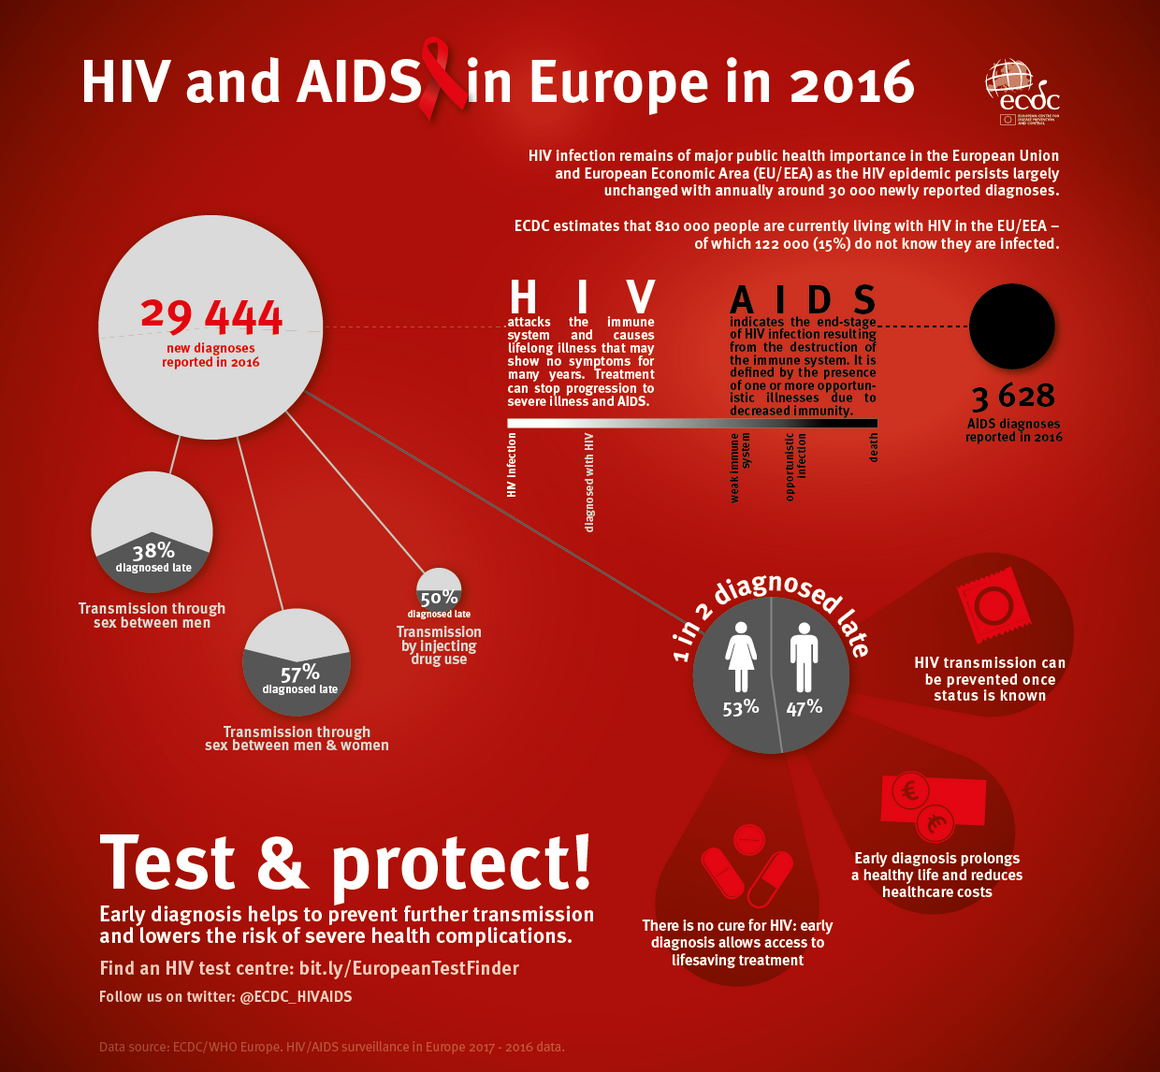 HIV and AIDS in Europe 2016